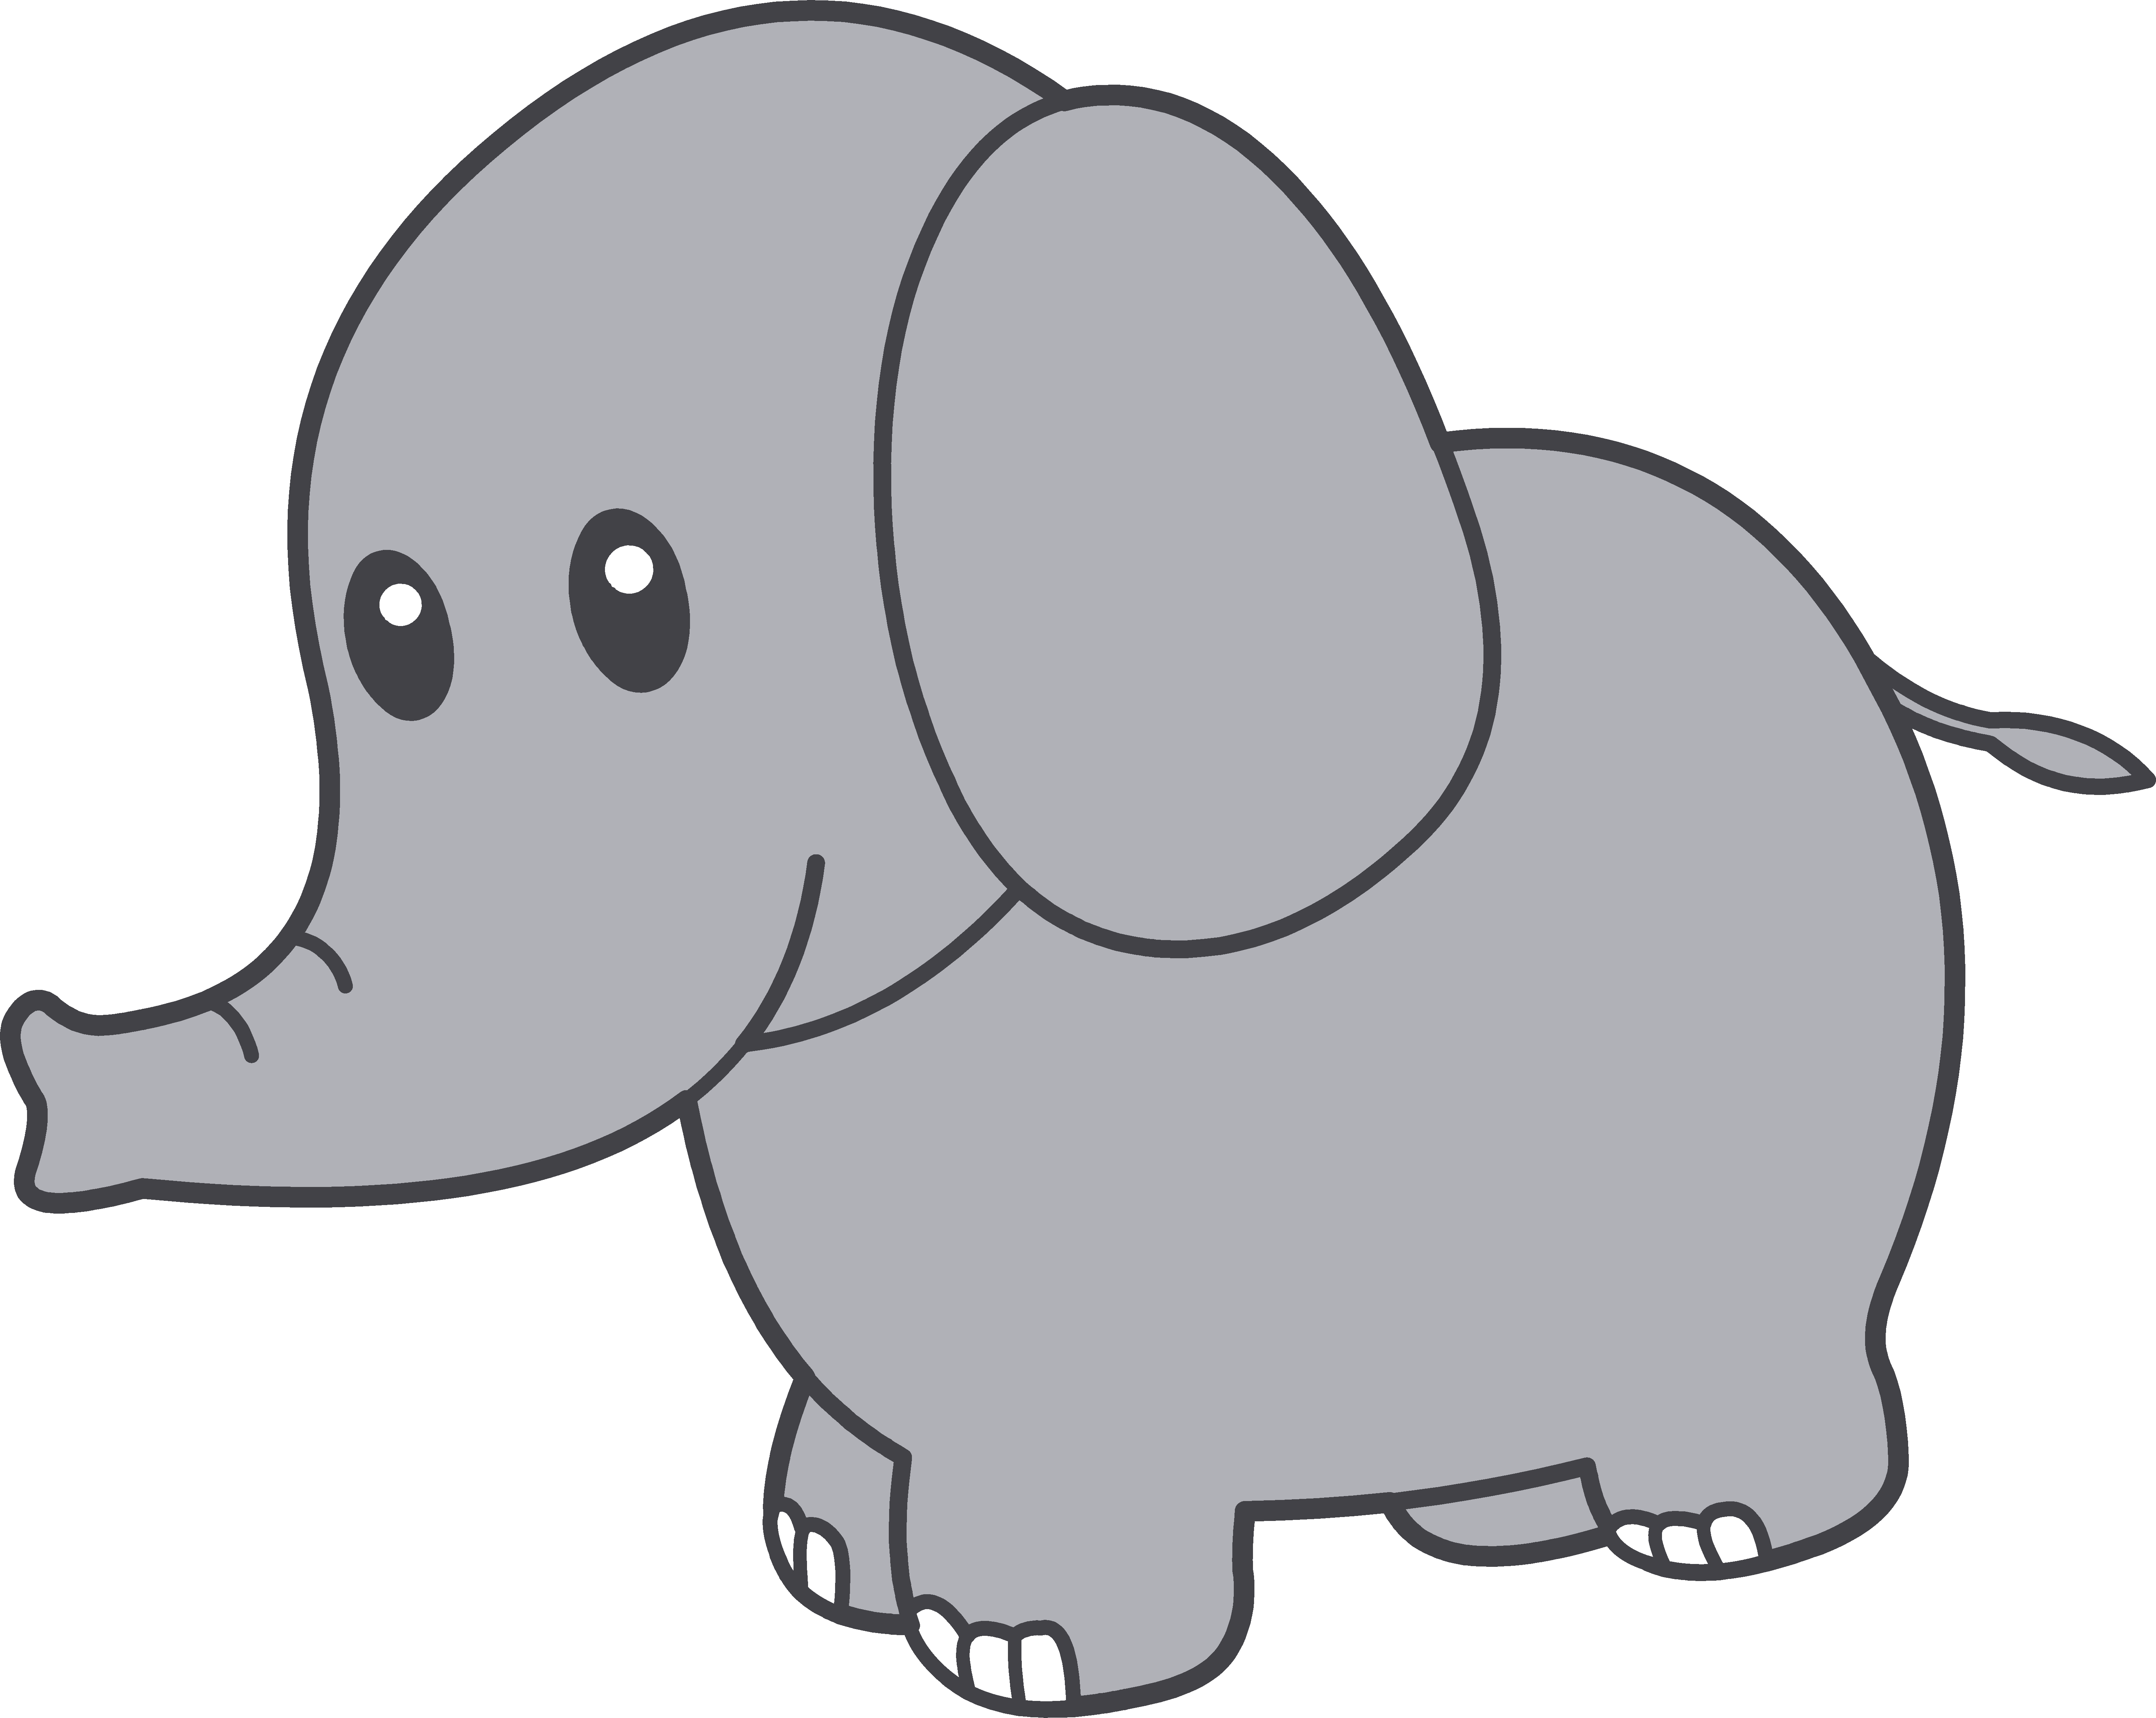 Cute elephant free images. Paws clipart timberwolf